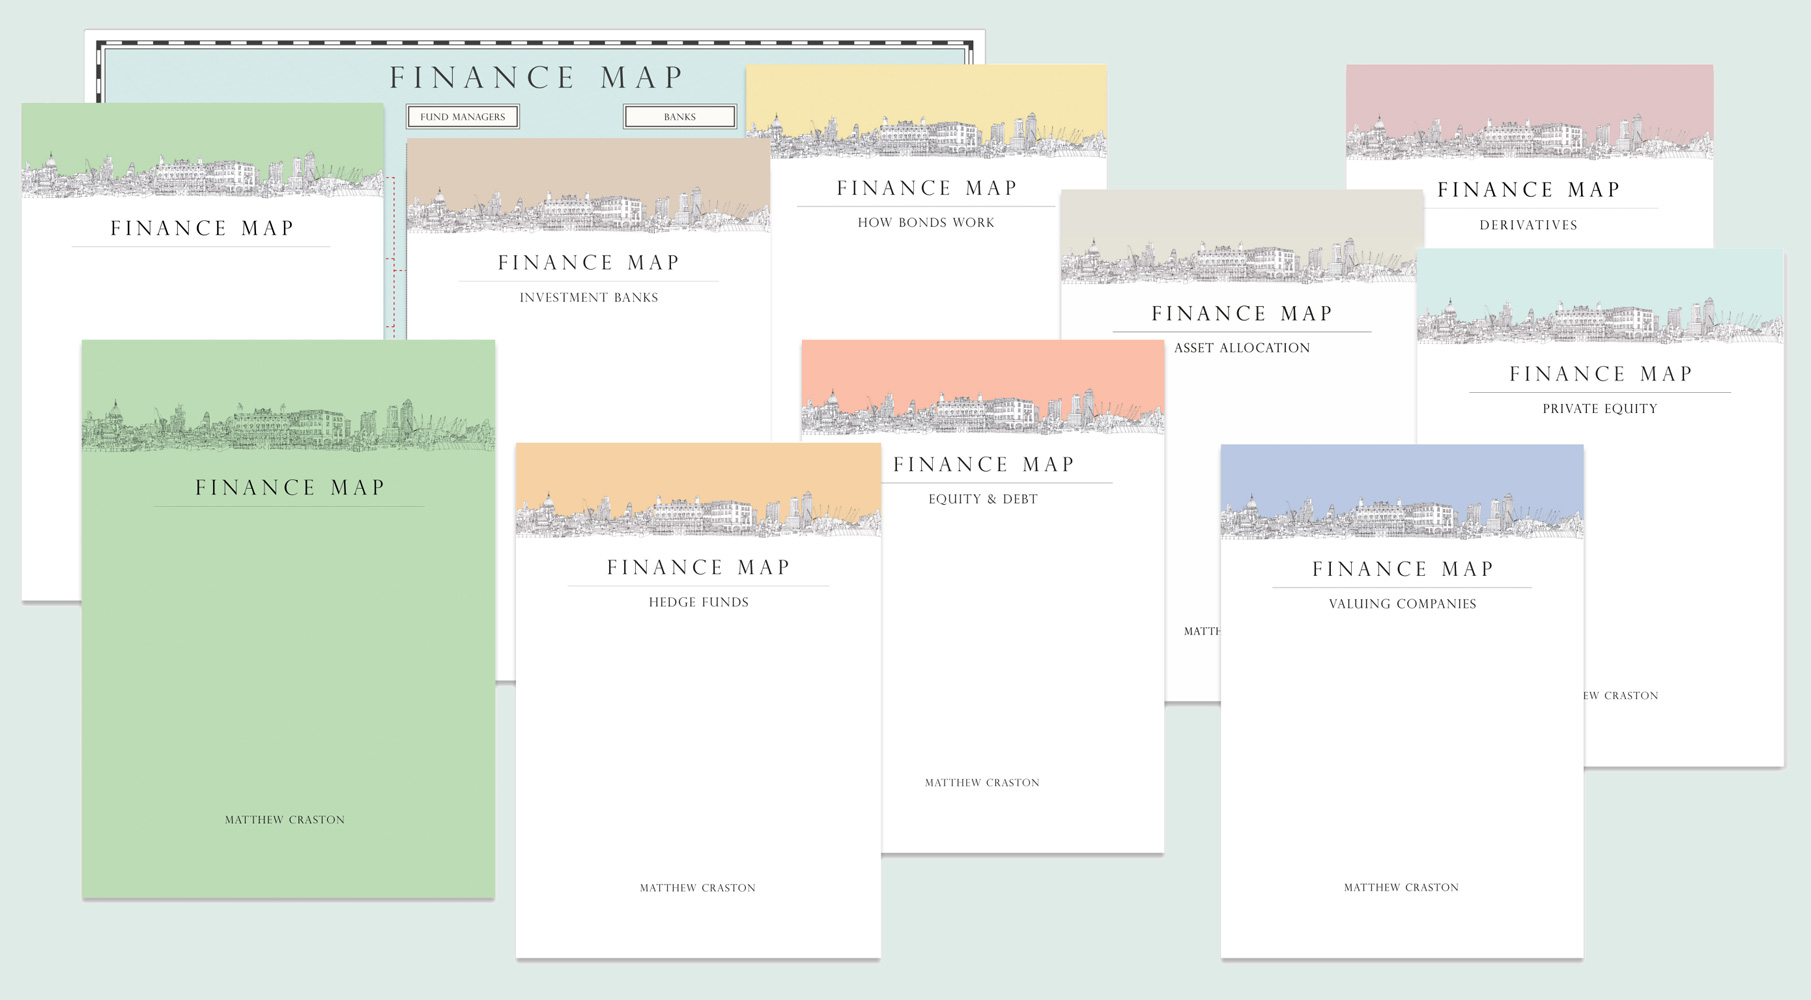 FINANCE MAP FOR COMPANIES